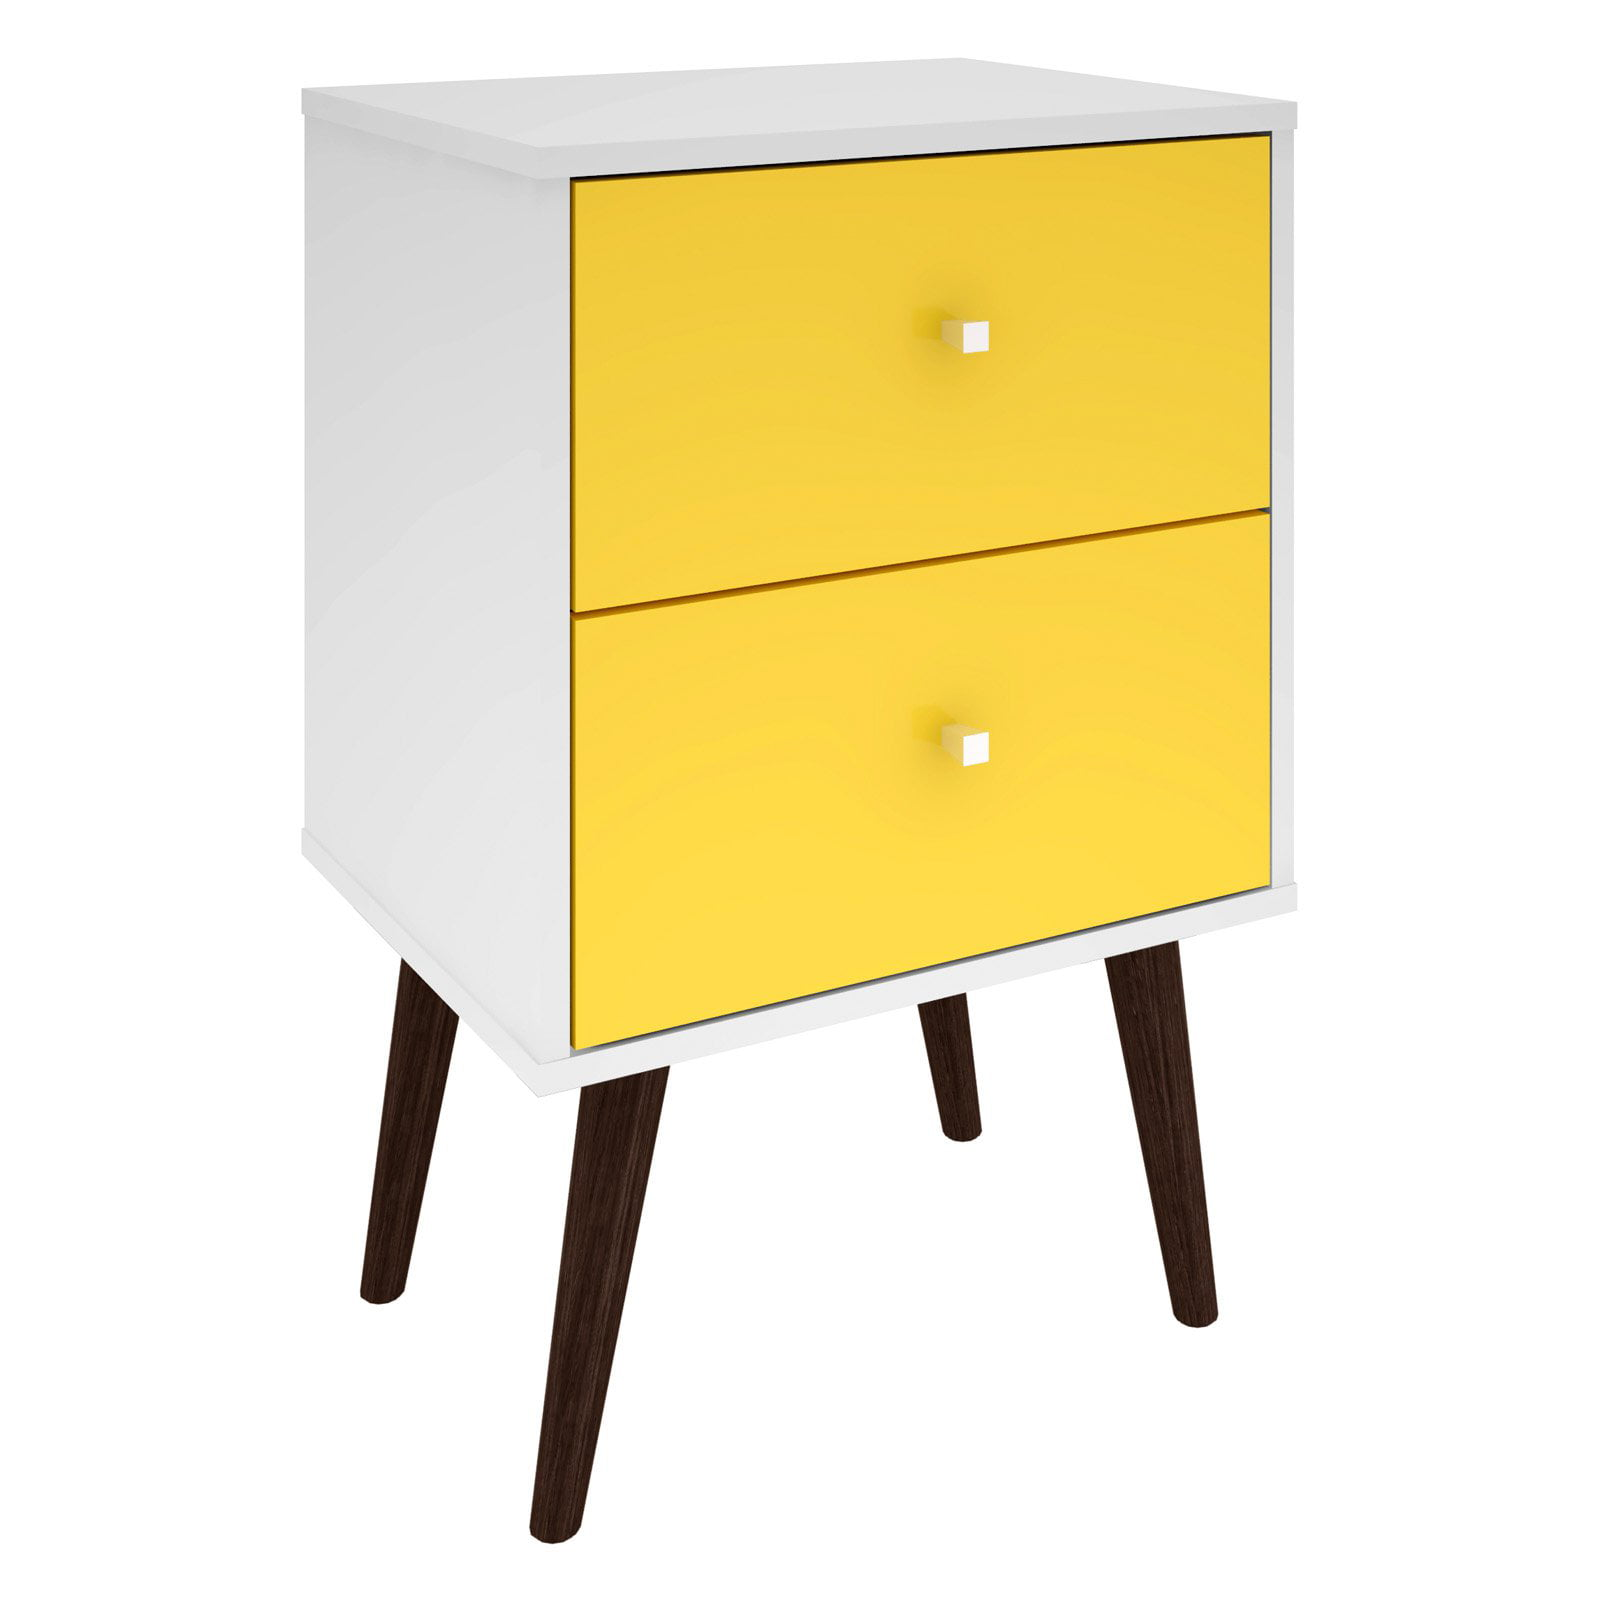 Liberty Mid Century Modern Nightstand 2 0 With 2 Full Extension Drawers In White And Yellow With Solid Wood Legs Walmart Canada